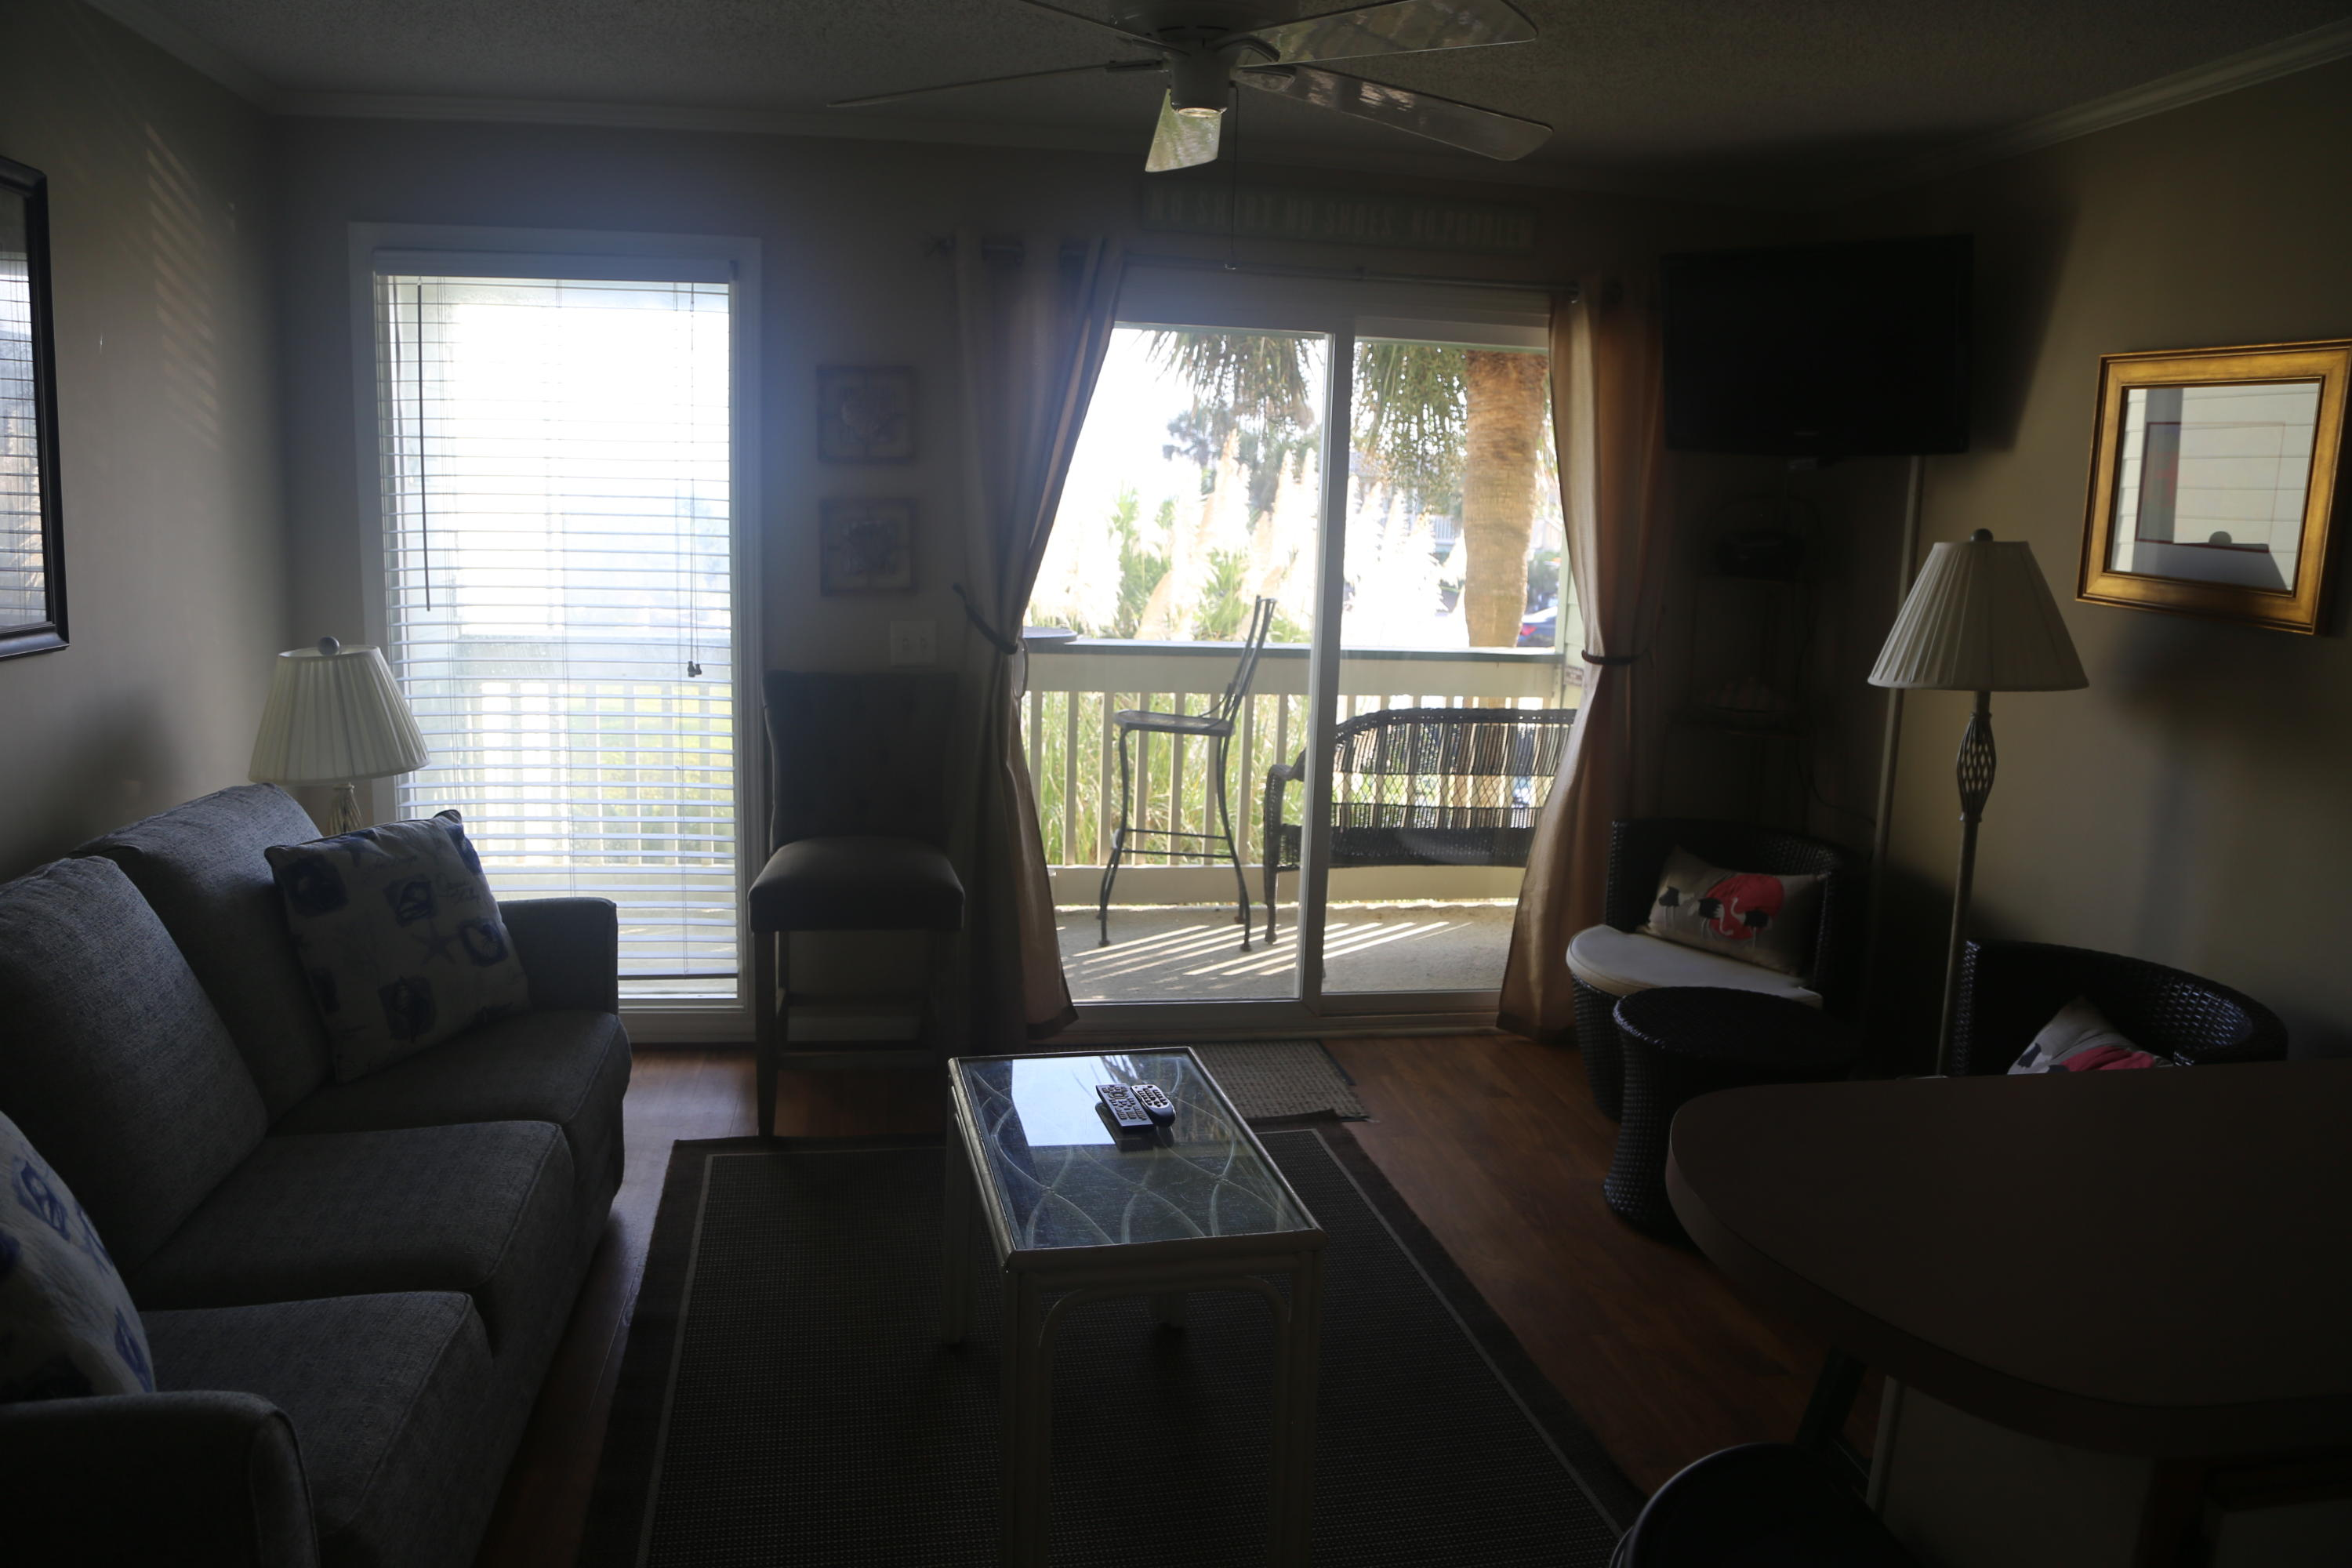 Sea Cabin On The Ocean Homes For Sale - 1300 Ocean, Isle of Palms, SC - 25